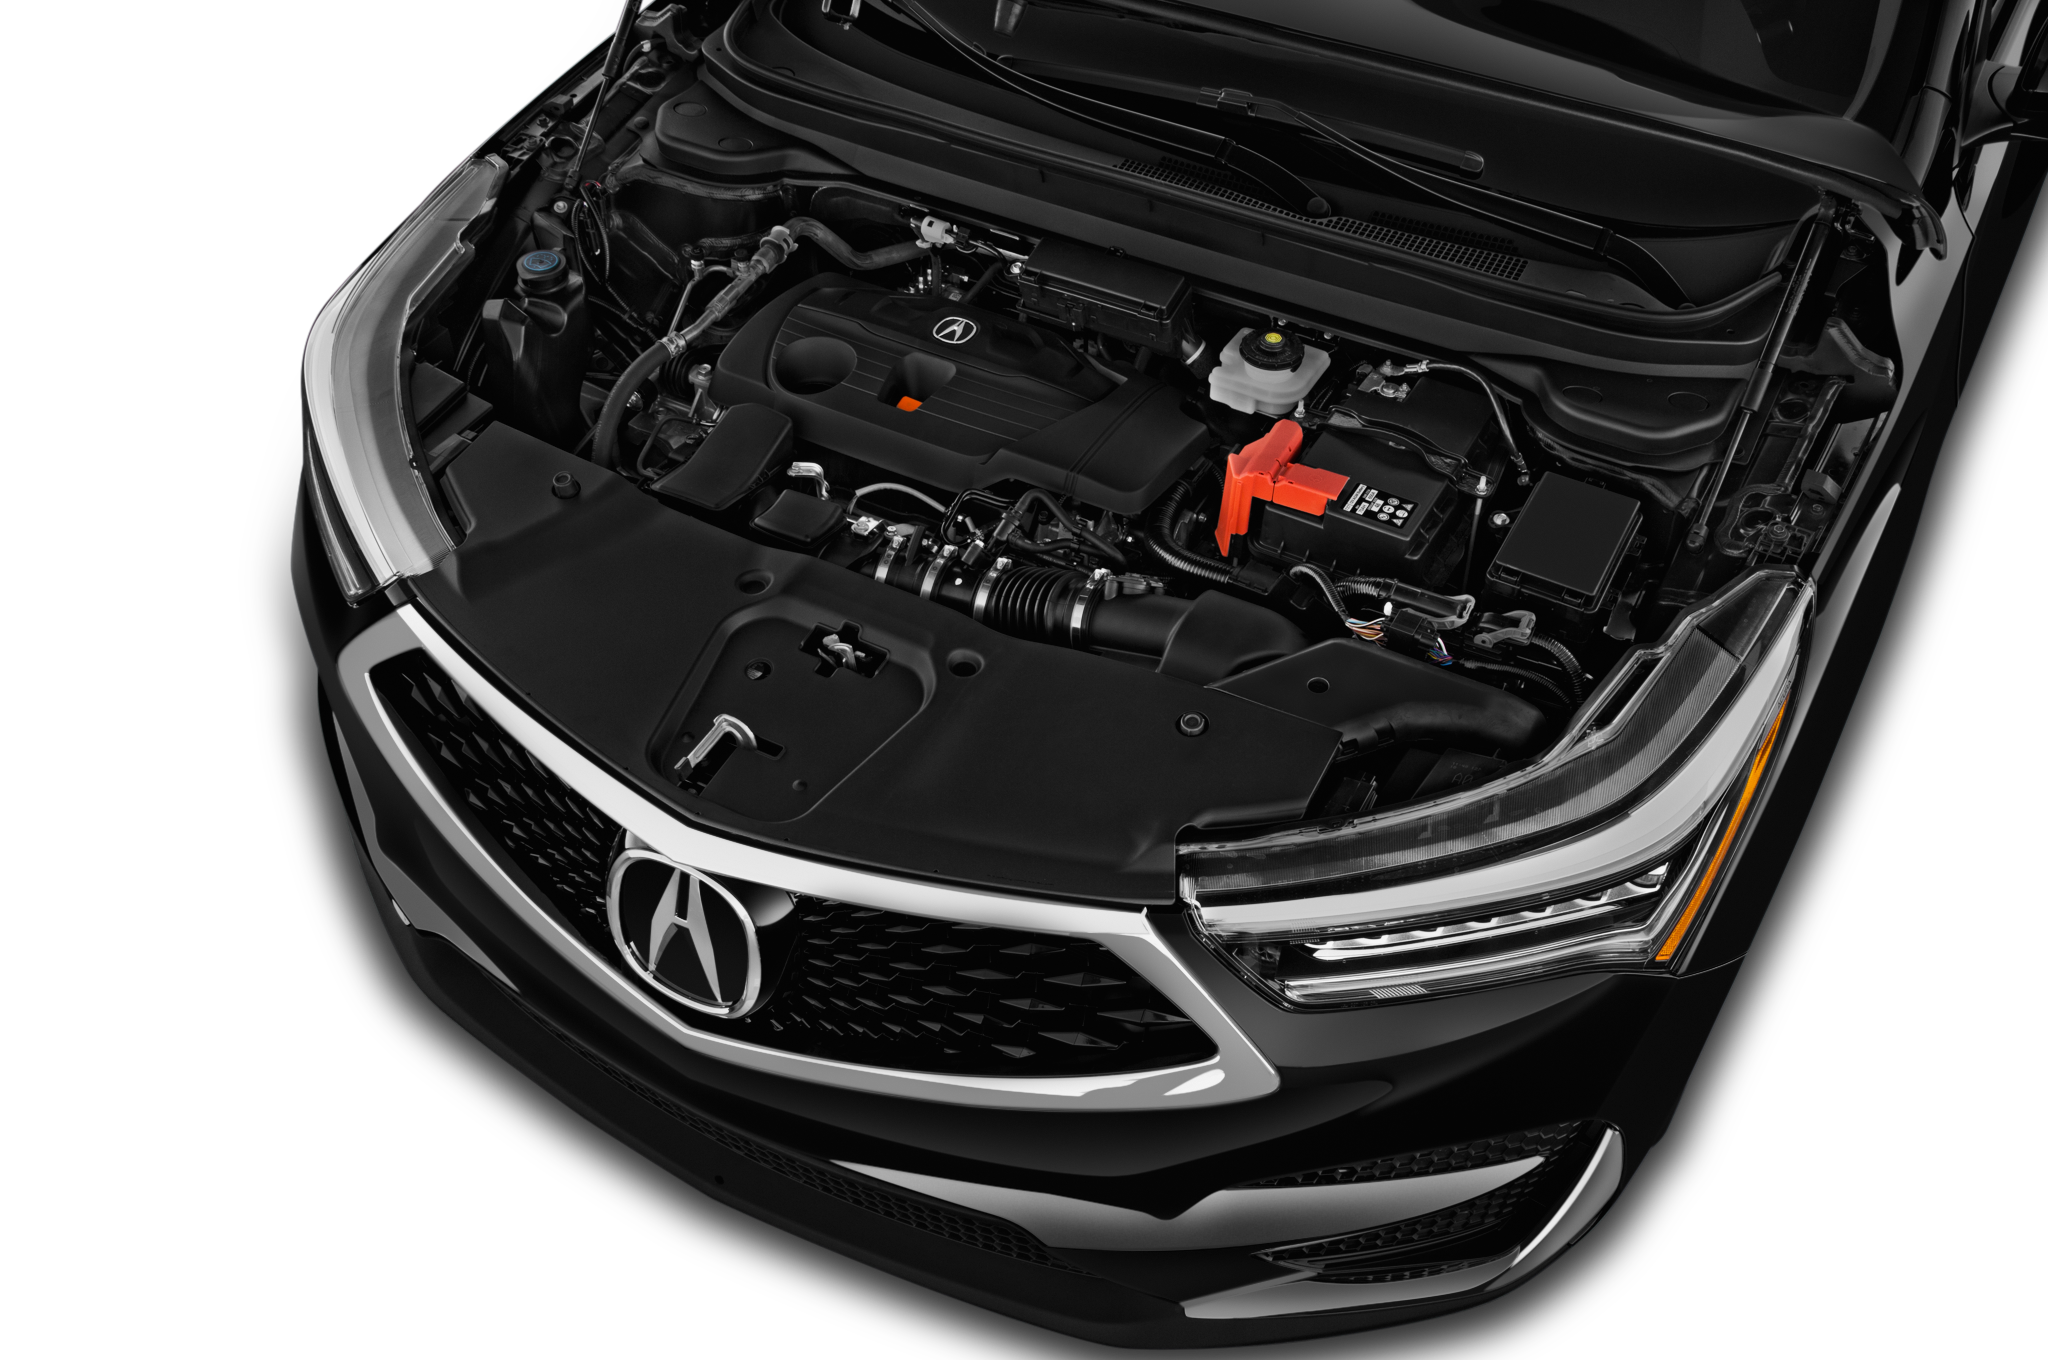 37 The 2019 Acura Rdx Engine Review for 2019 Acura Rdx Engine